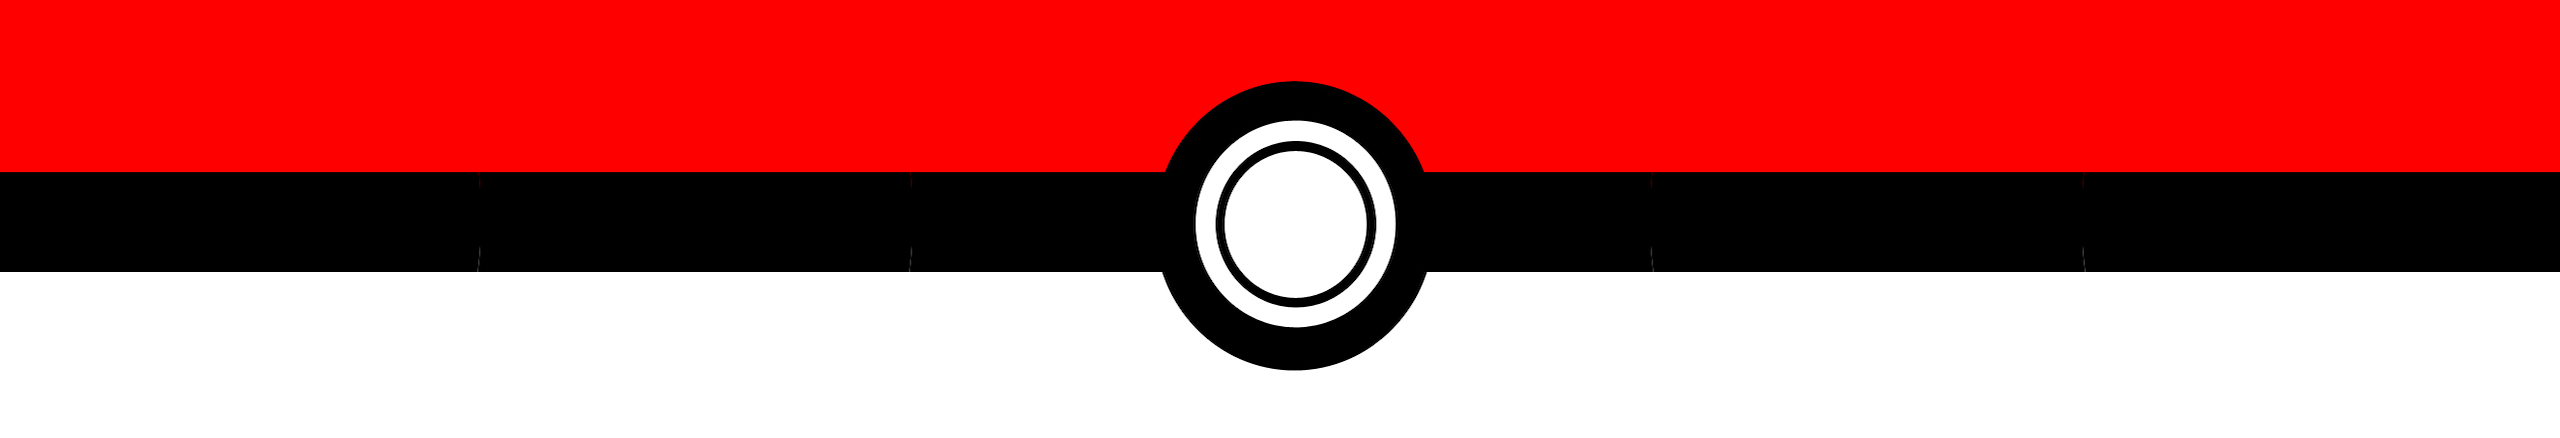 Team Pokemon Banners College Website Banners